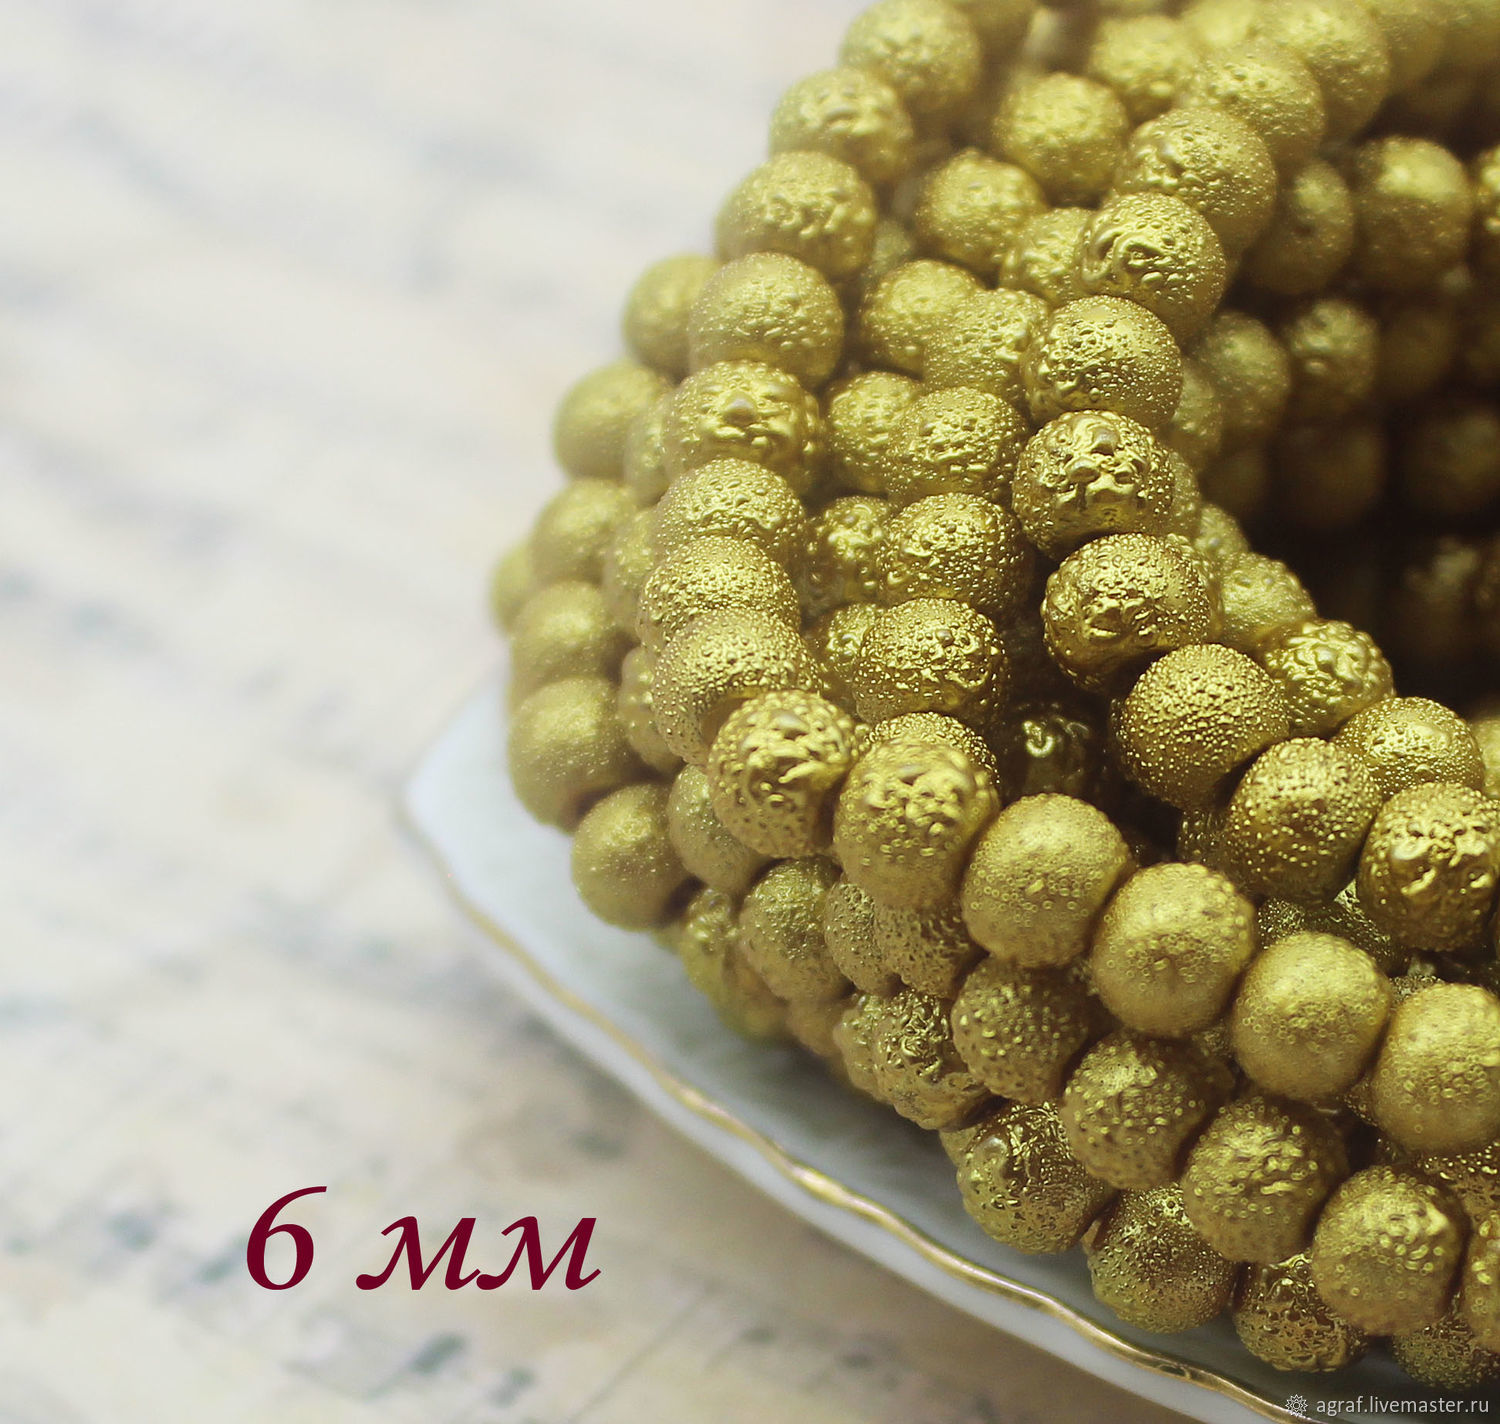 Beads Pearl glass gold Scythian 6 mm textured, Beads1, Solikamsk,  Фото №1